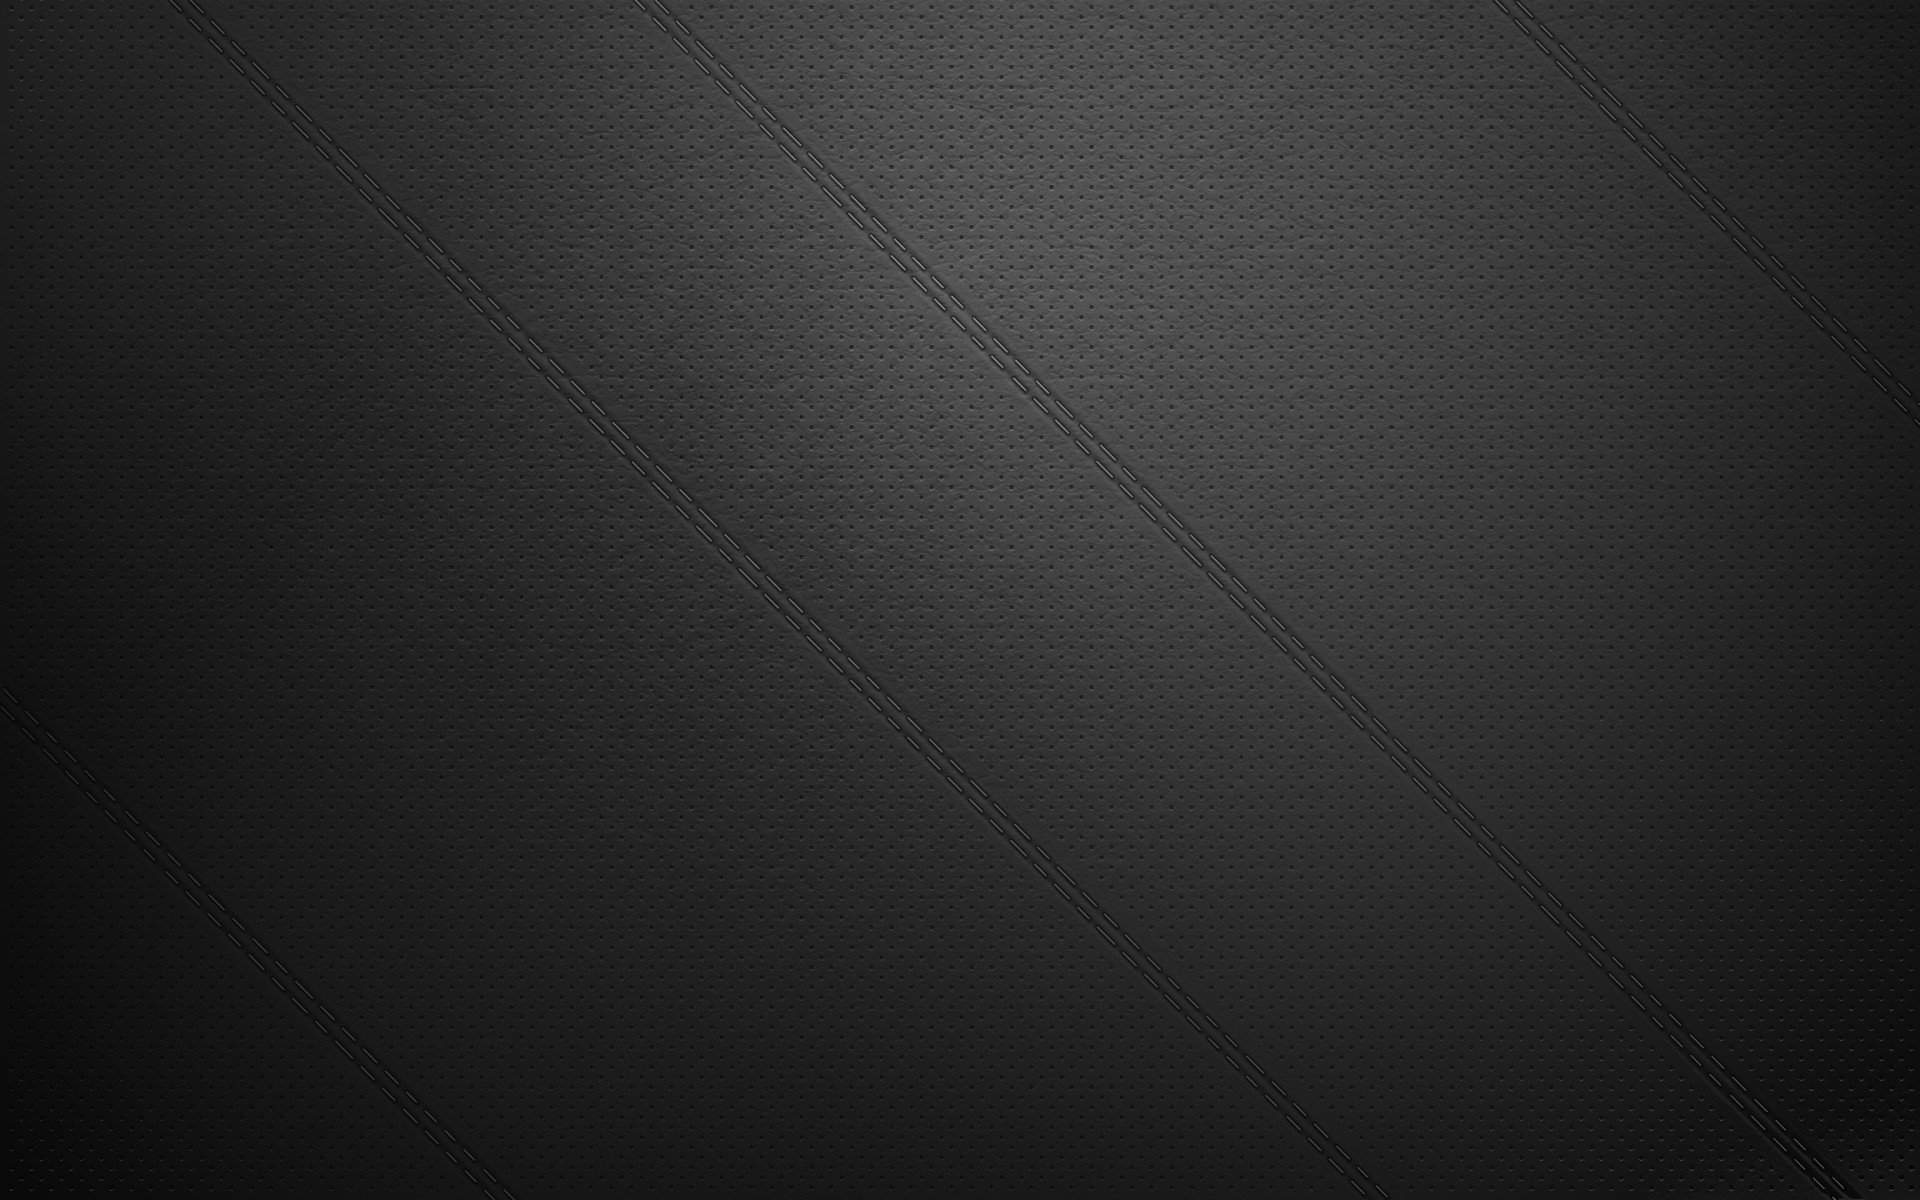 Black Chrome Wallpapers - Top Free